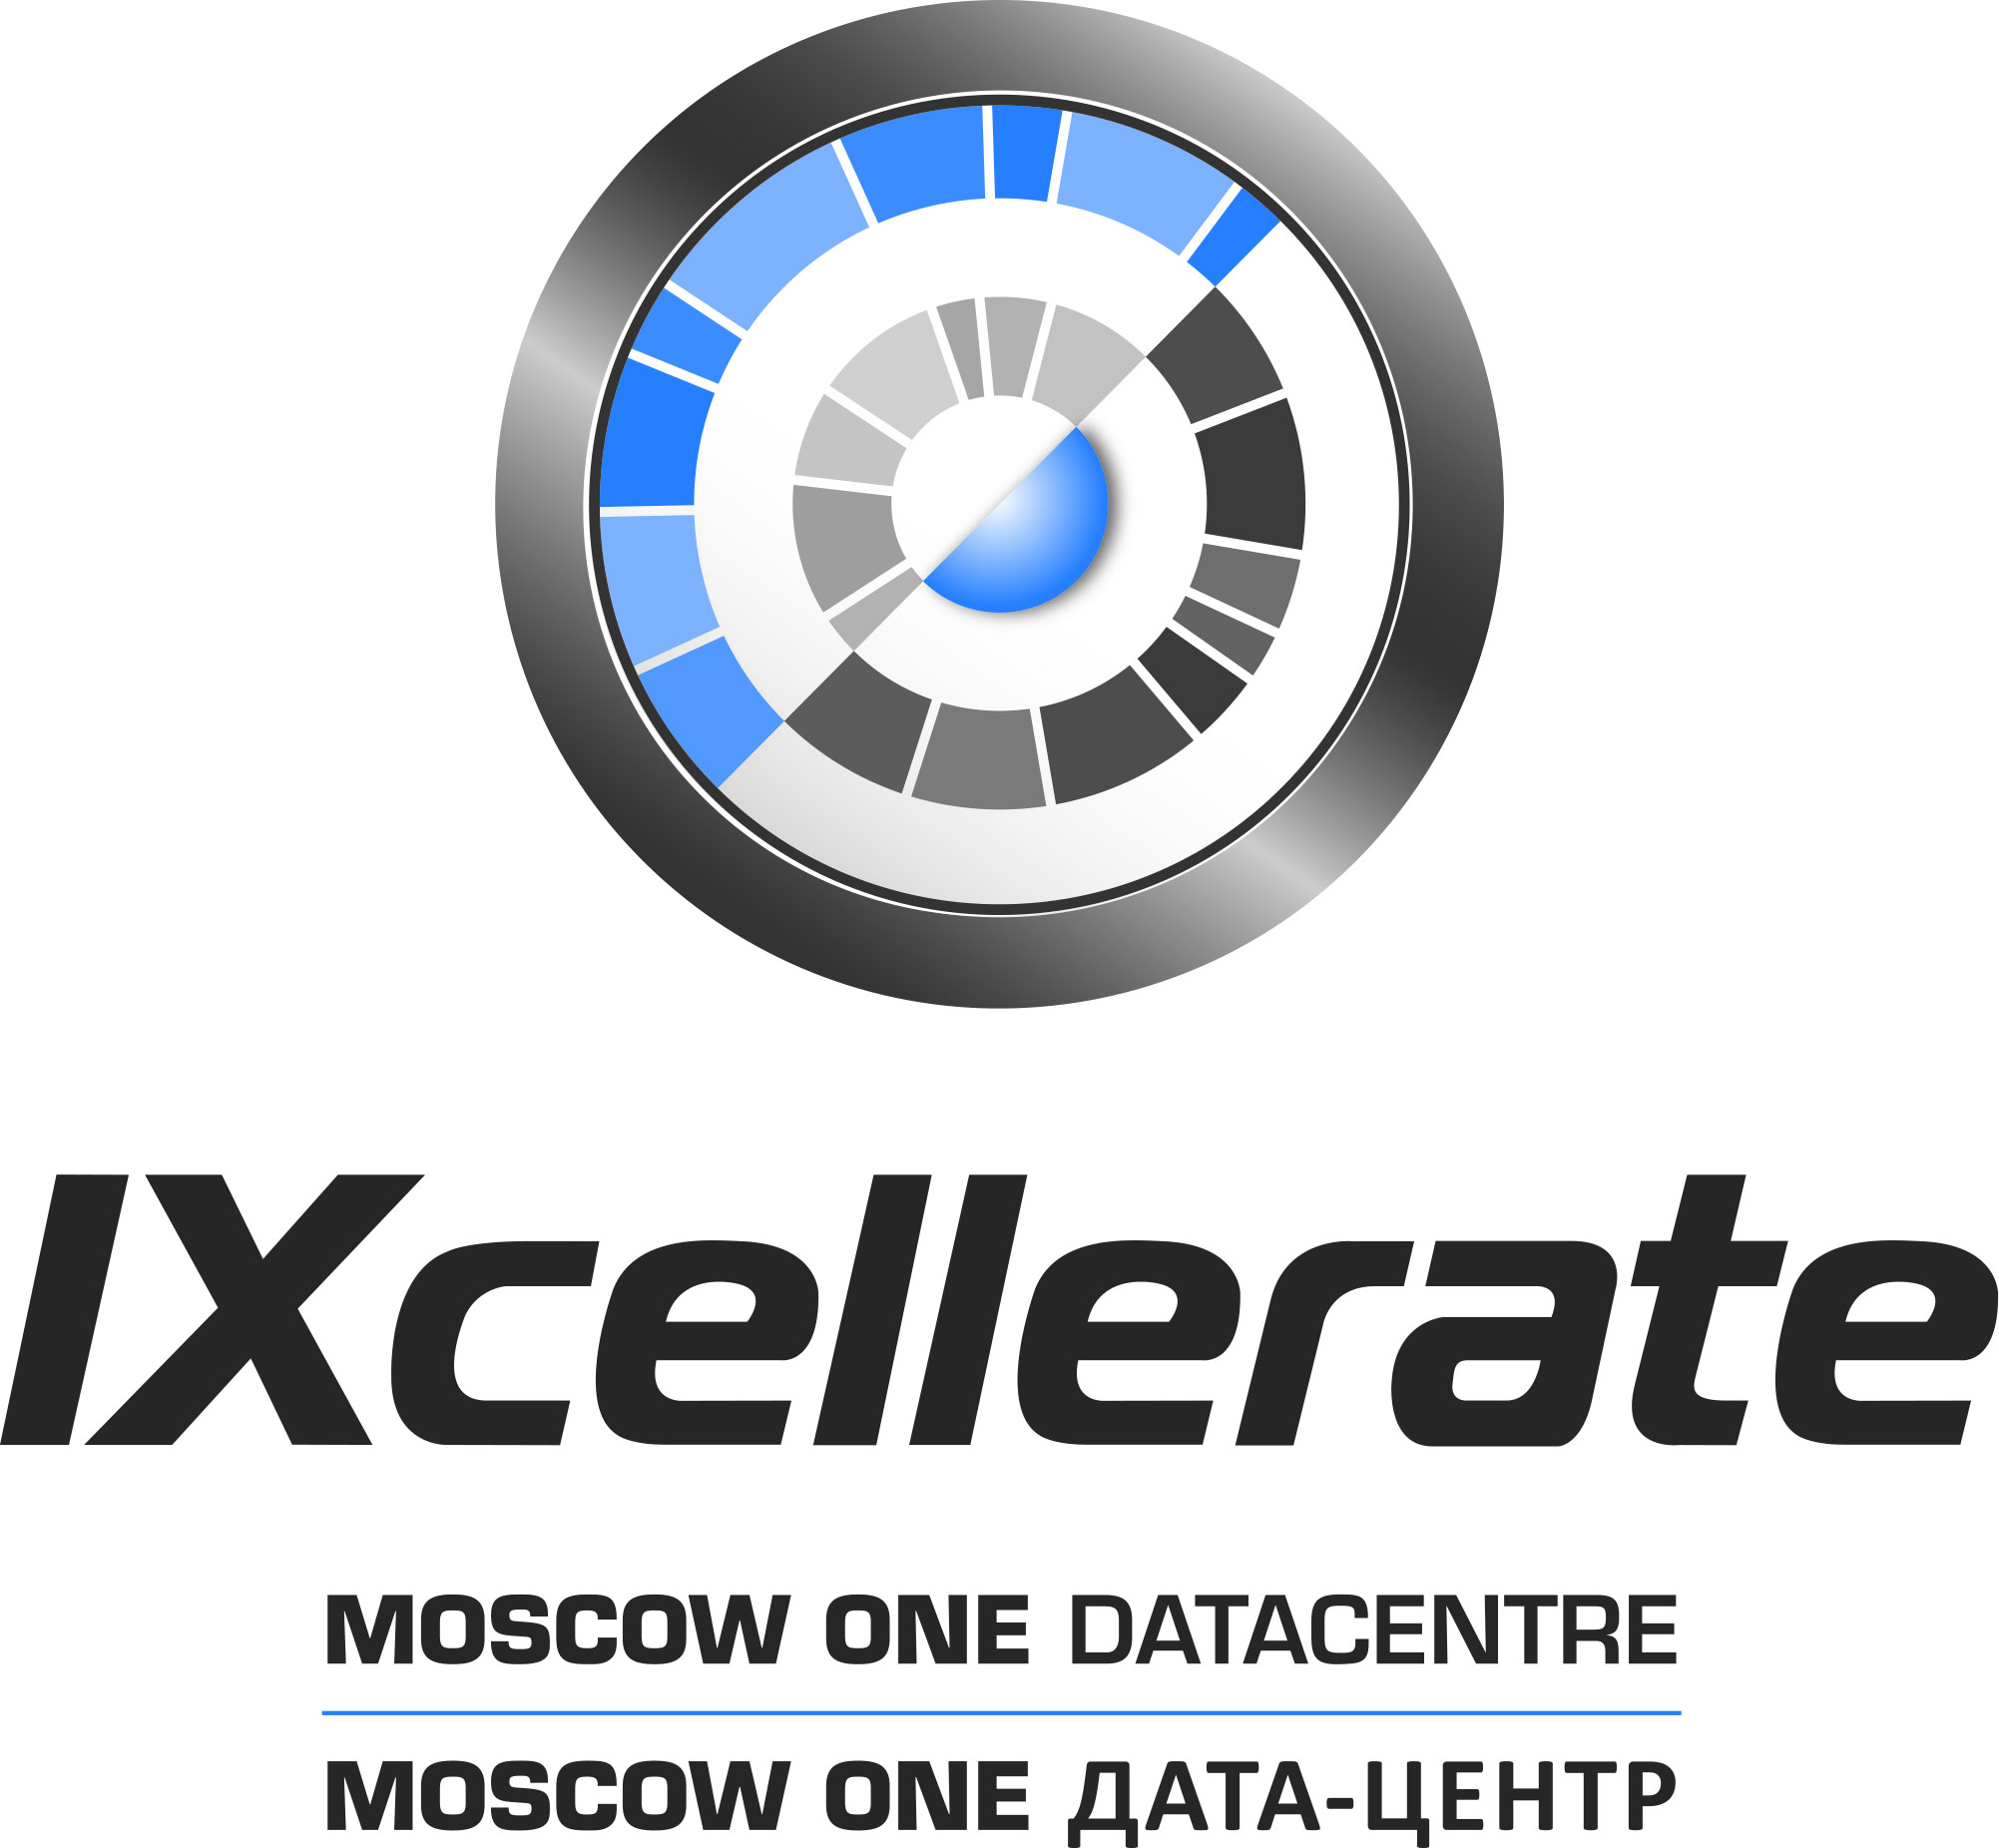 IXcellerate